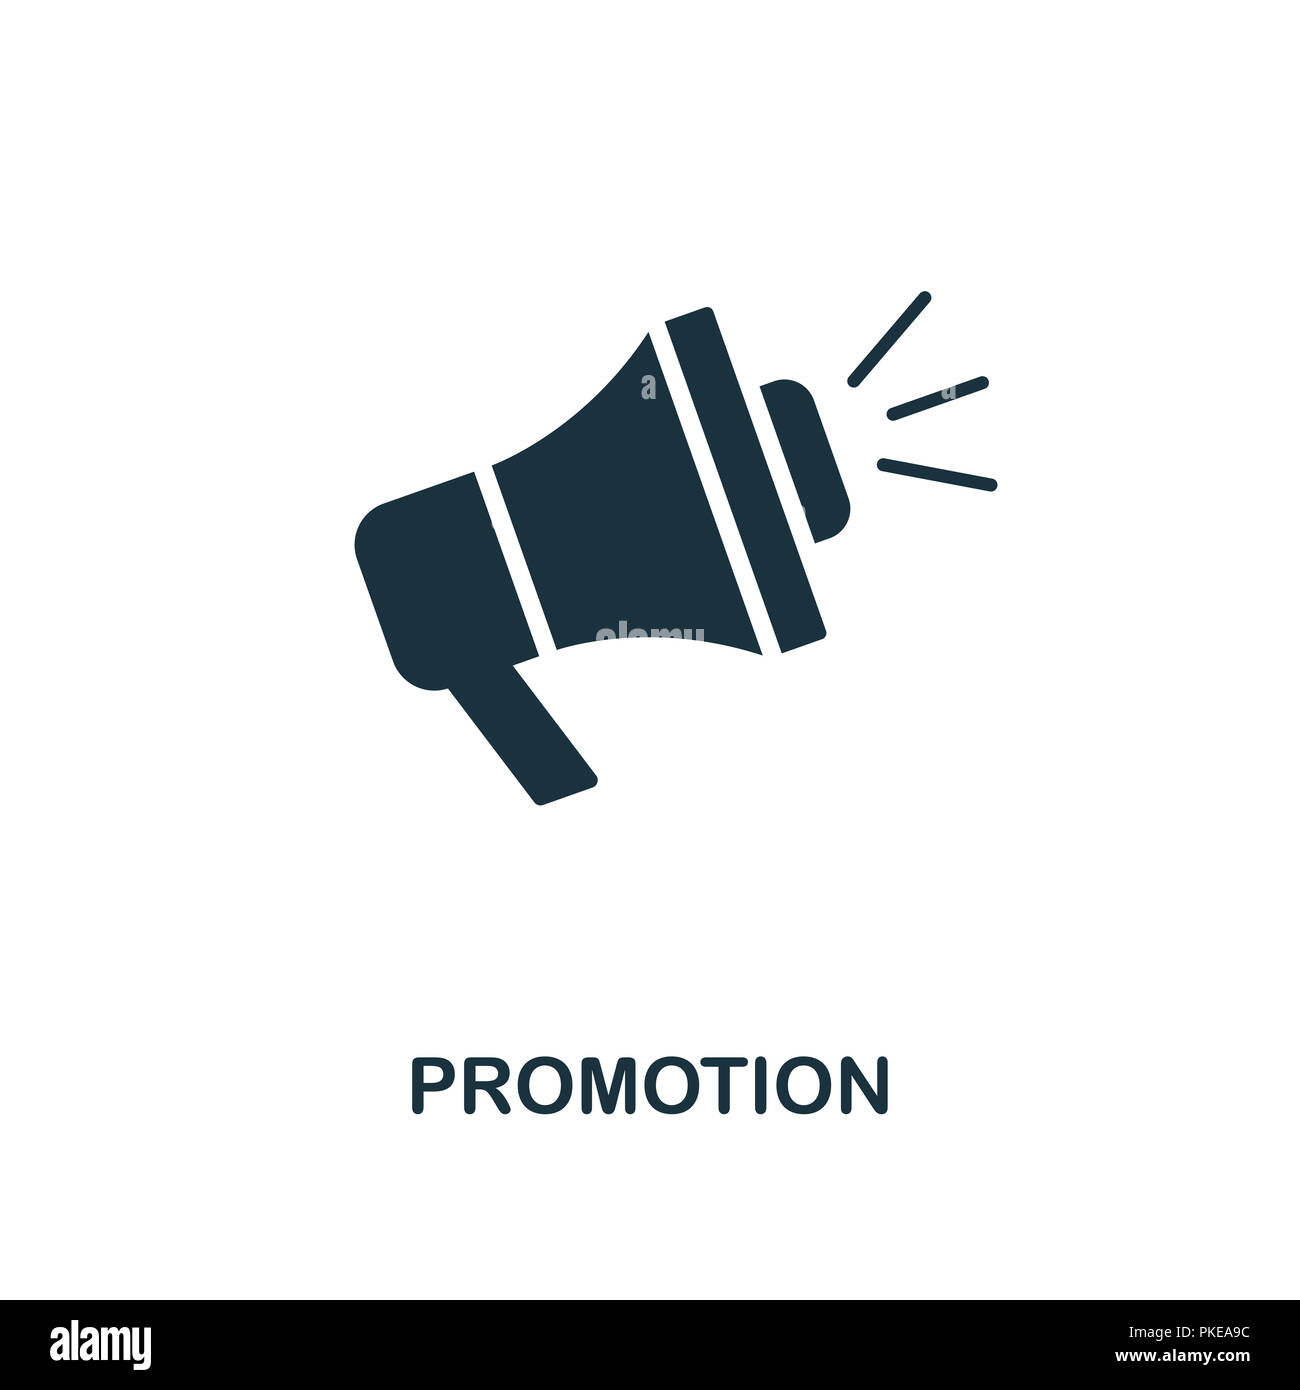 Promotion icon. Monochrome style design from e-commerce collection. UI. Pixel perfect simple pictogram promotion icon. Web design, apps, software, pri - Stock Image